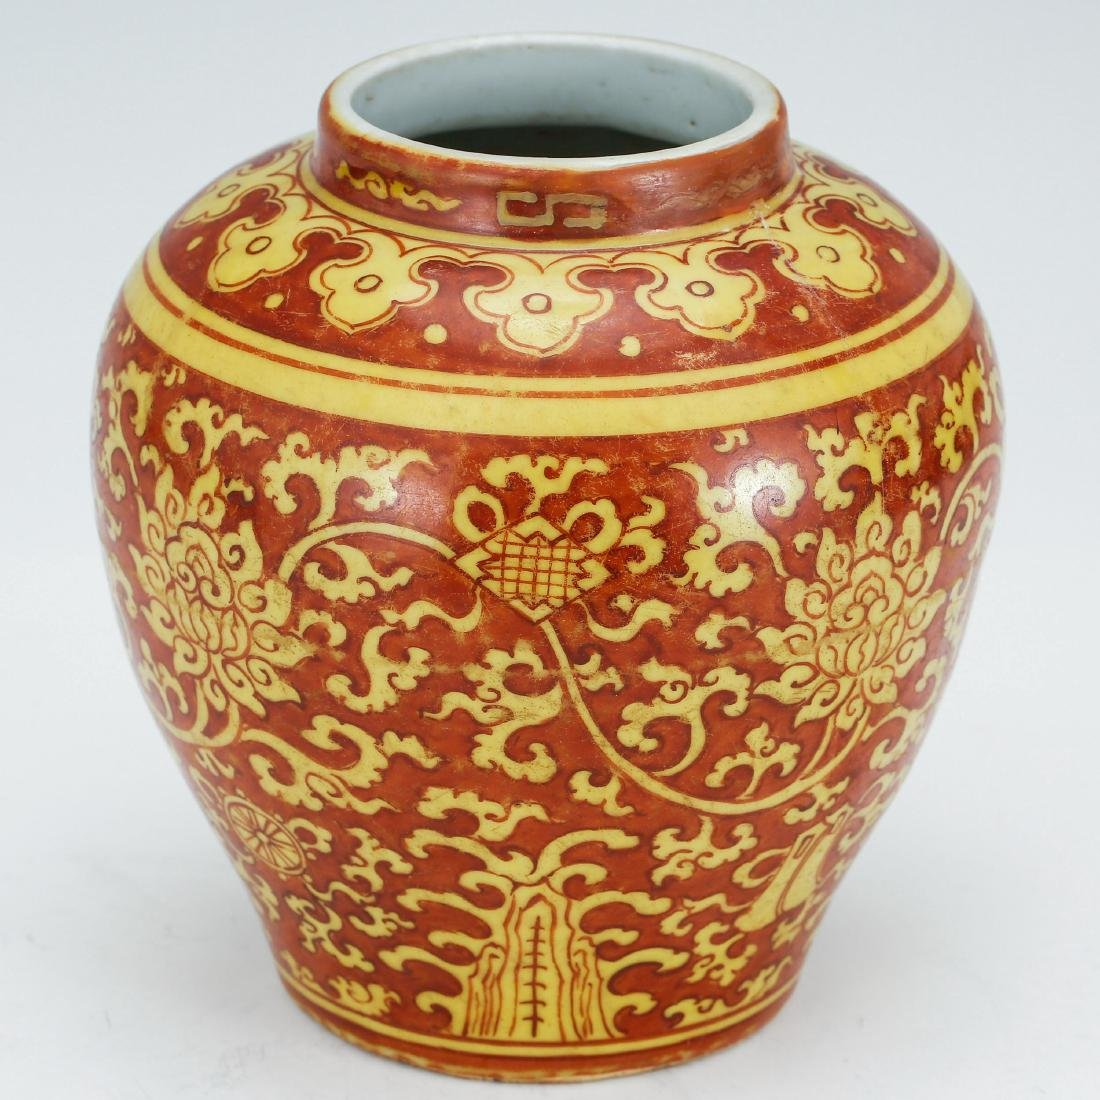 CHINESE RED ON YELLOW GROUND PORCELAIN JAR, MING